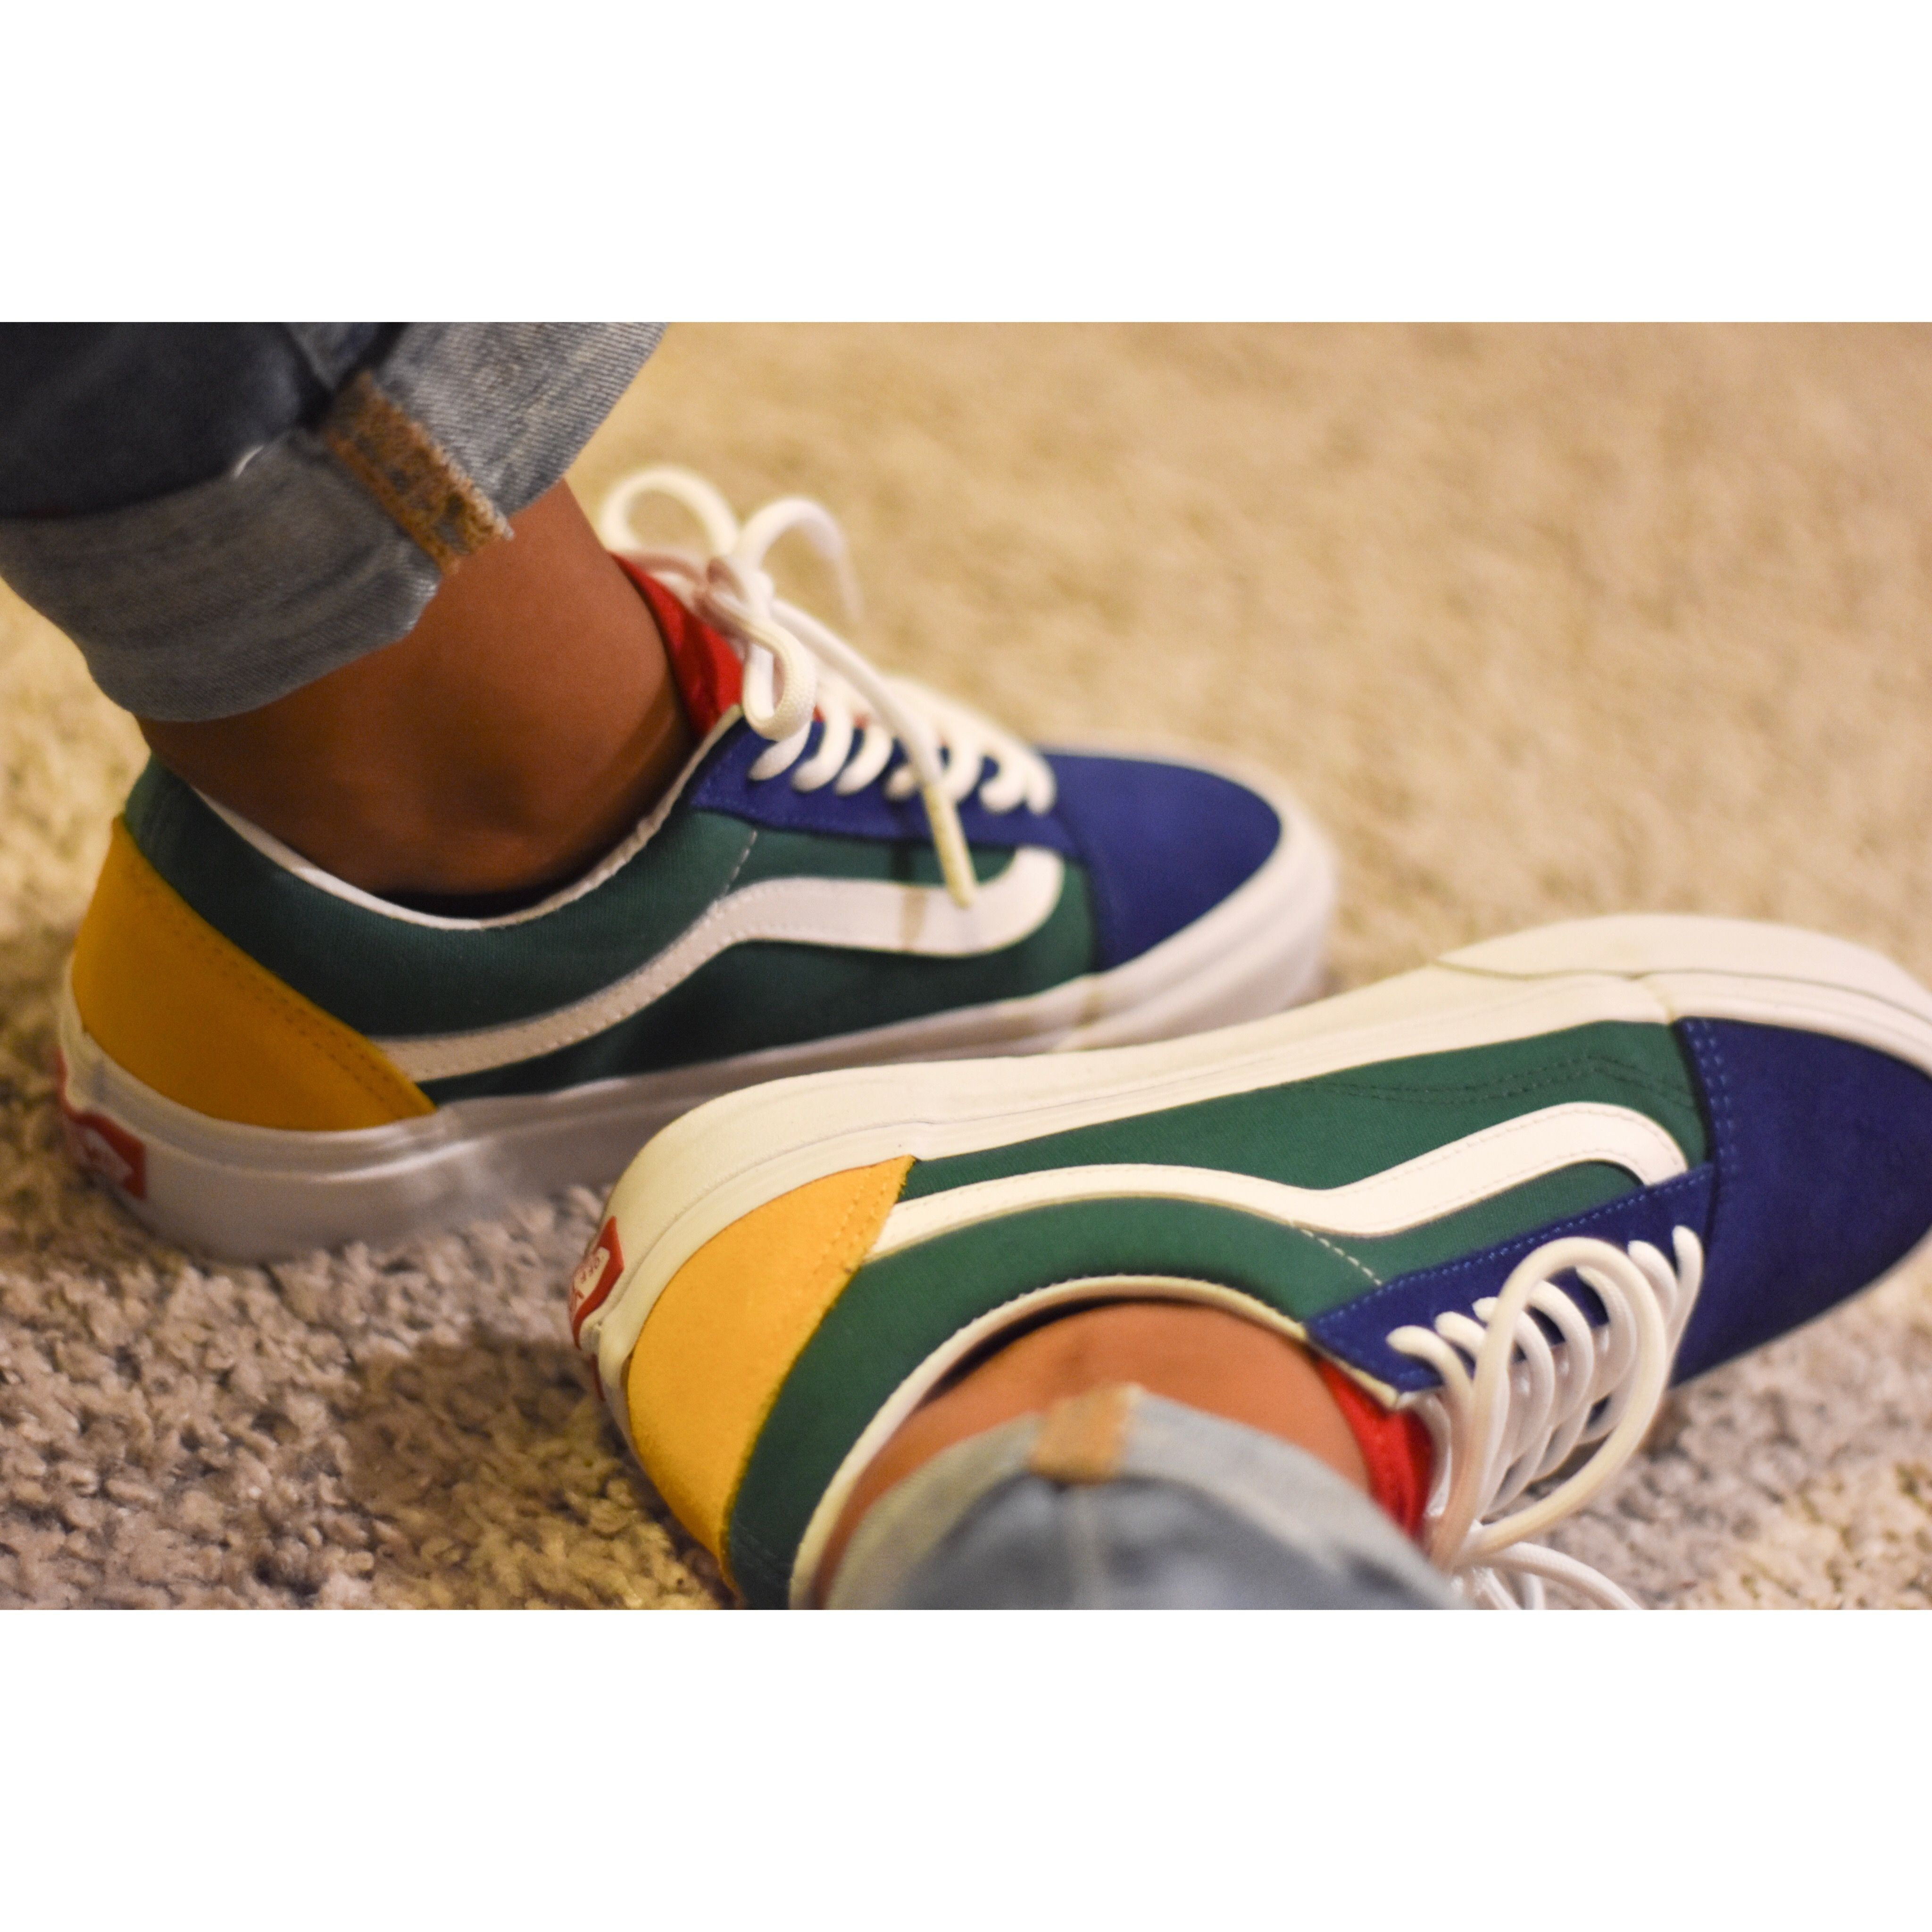 b9de91142ac Vans Yacht Club | s h o e s in 2019 | Shoes, Sock shoes, Kids sneakers